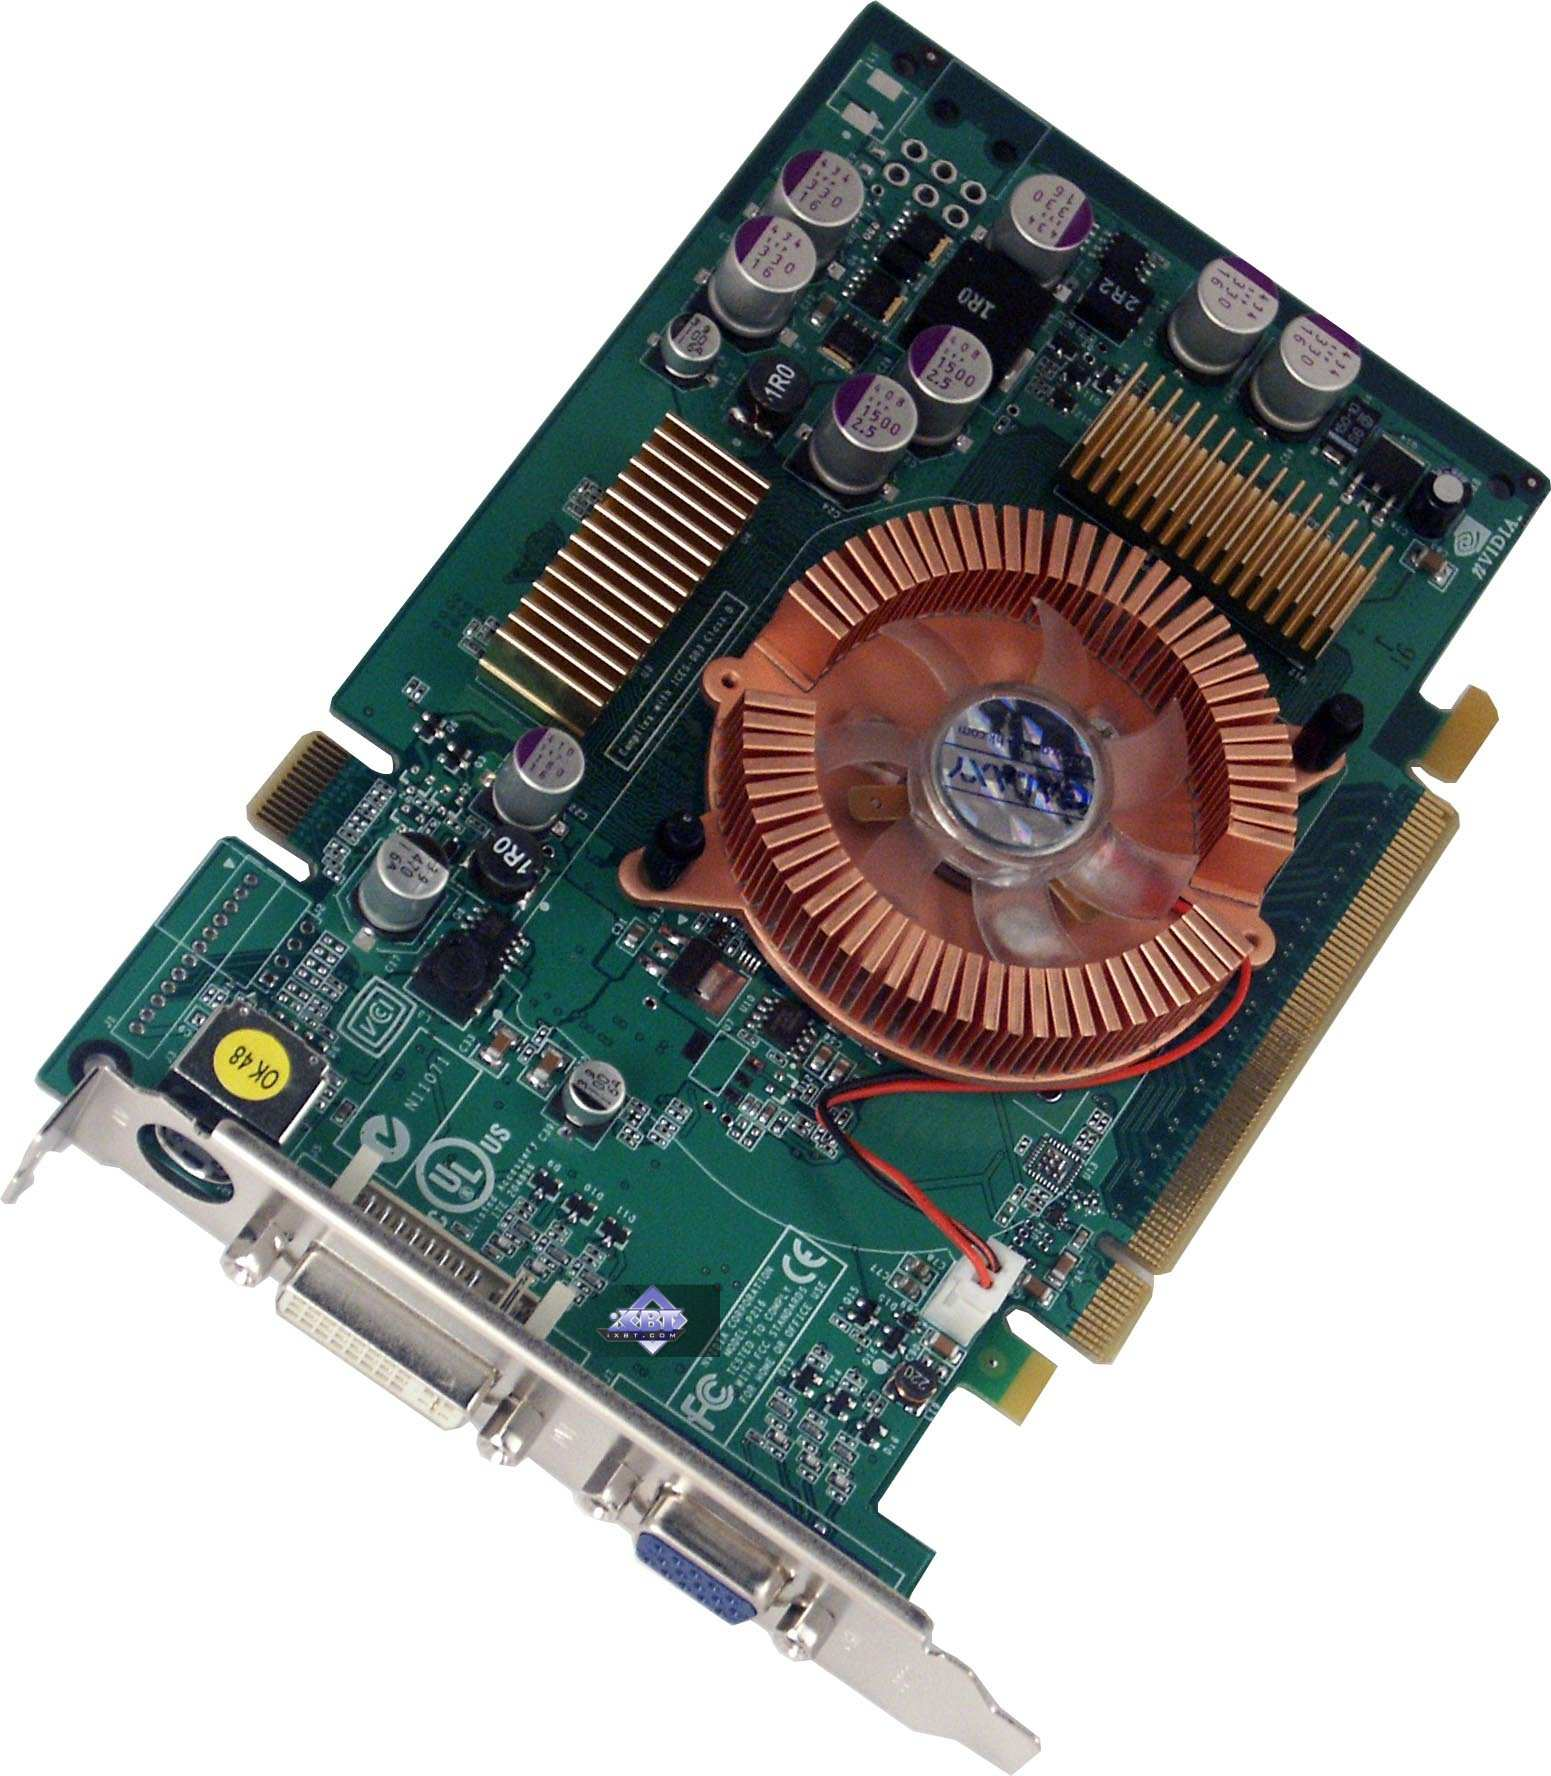 Nvidia Geforce 6200  6600  6600gt Based Video Cards  Asus